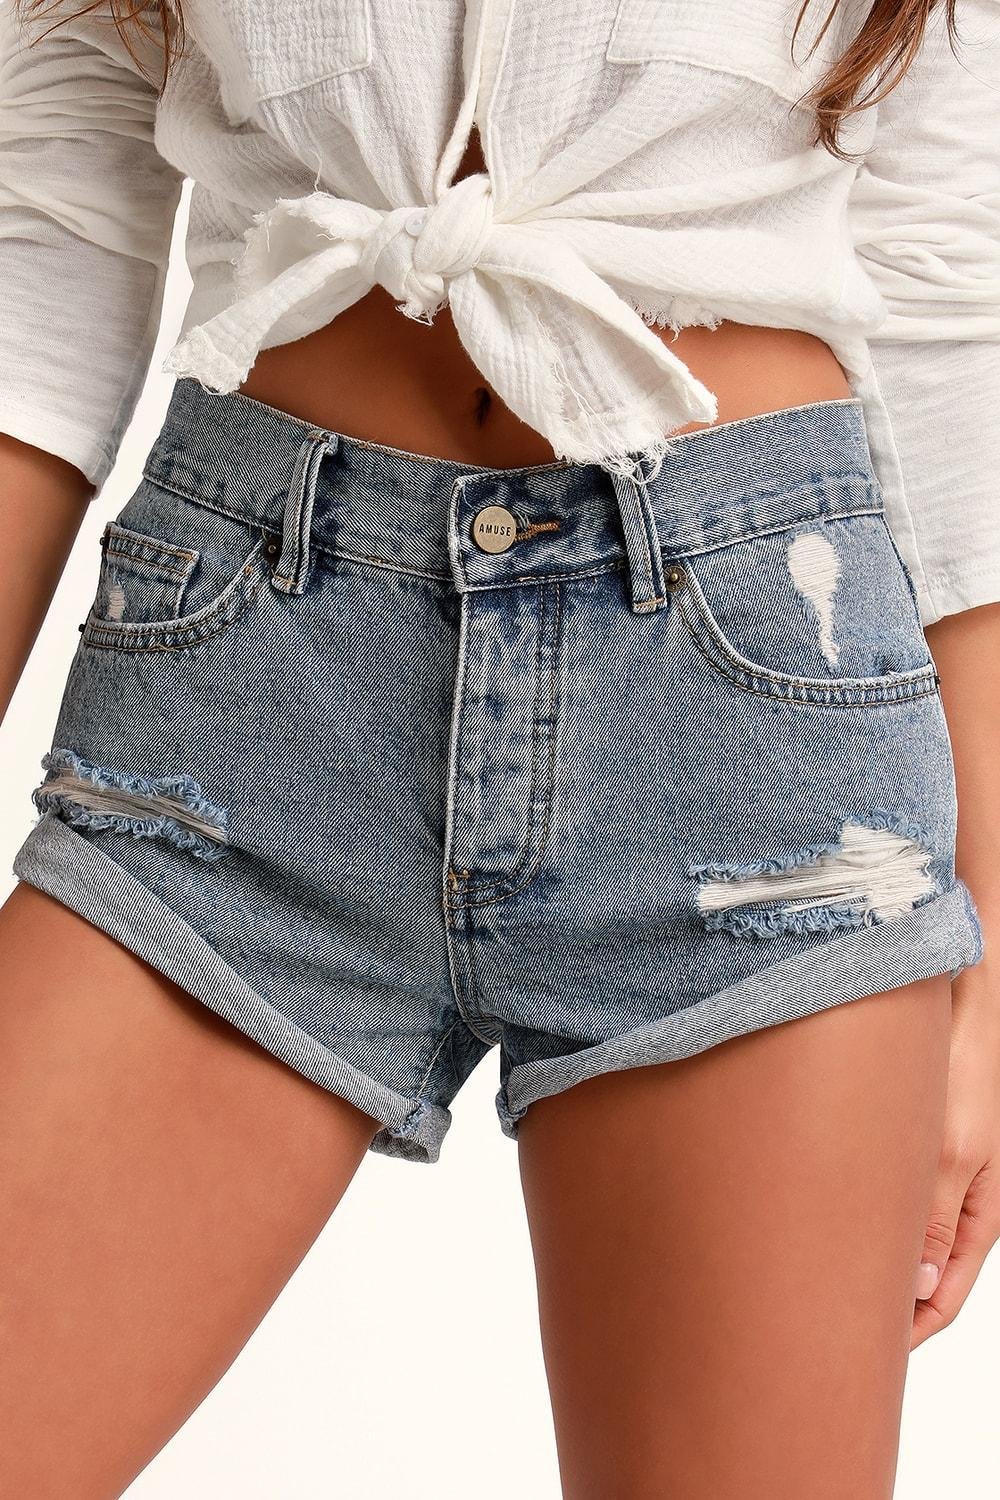 In a casual way, it is better to tie a white linen shirt when you wear jean shorts